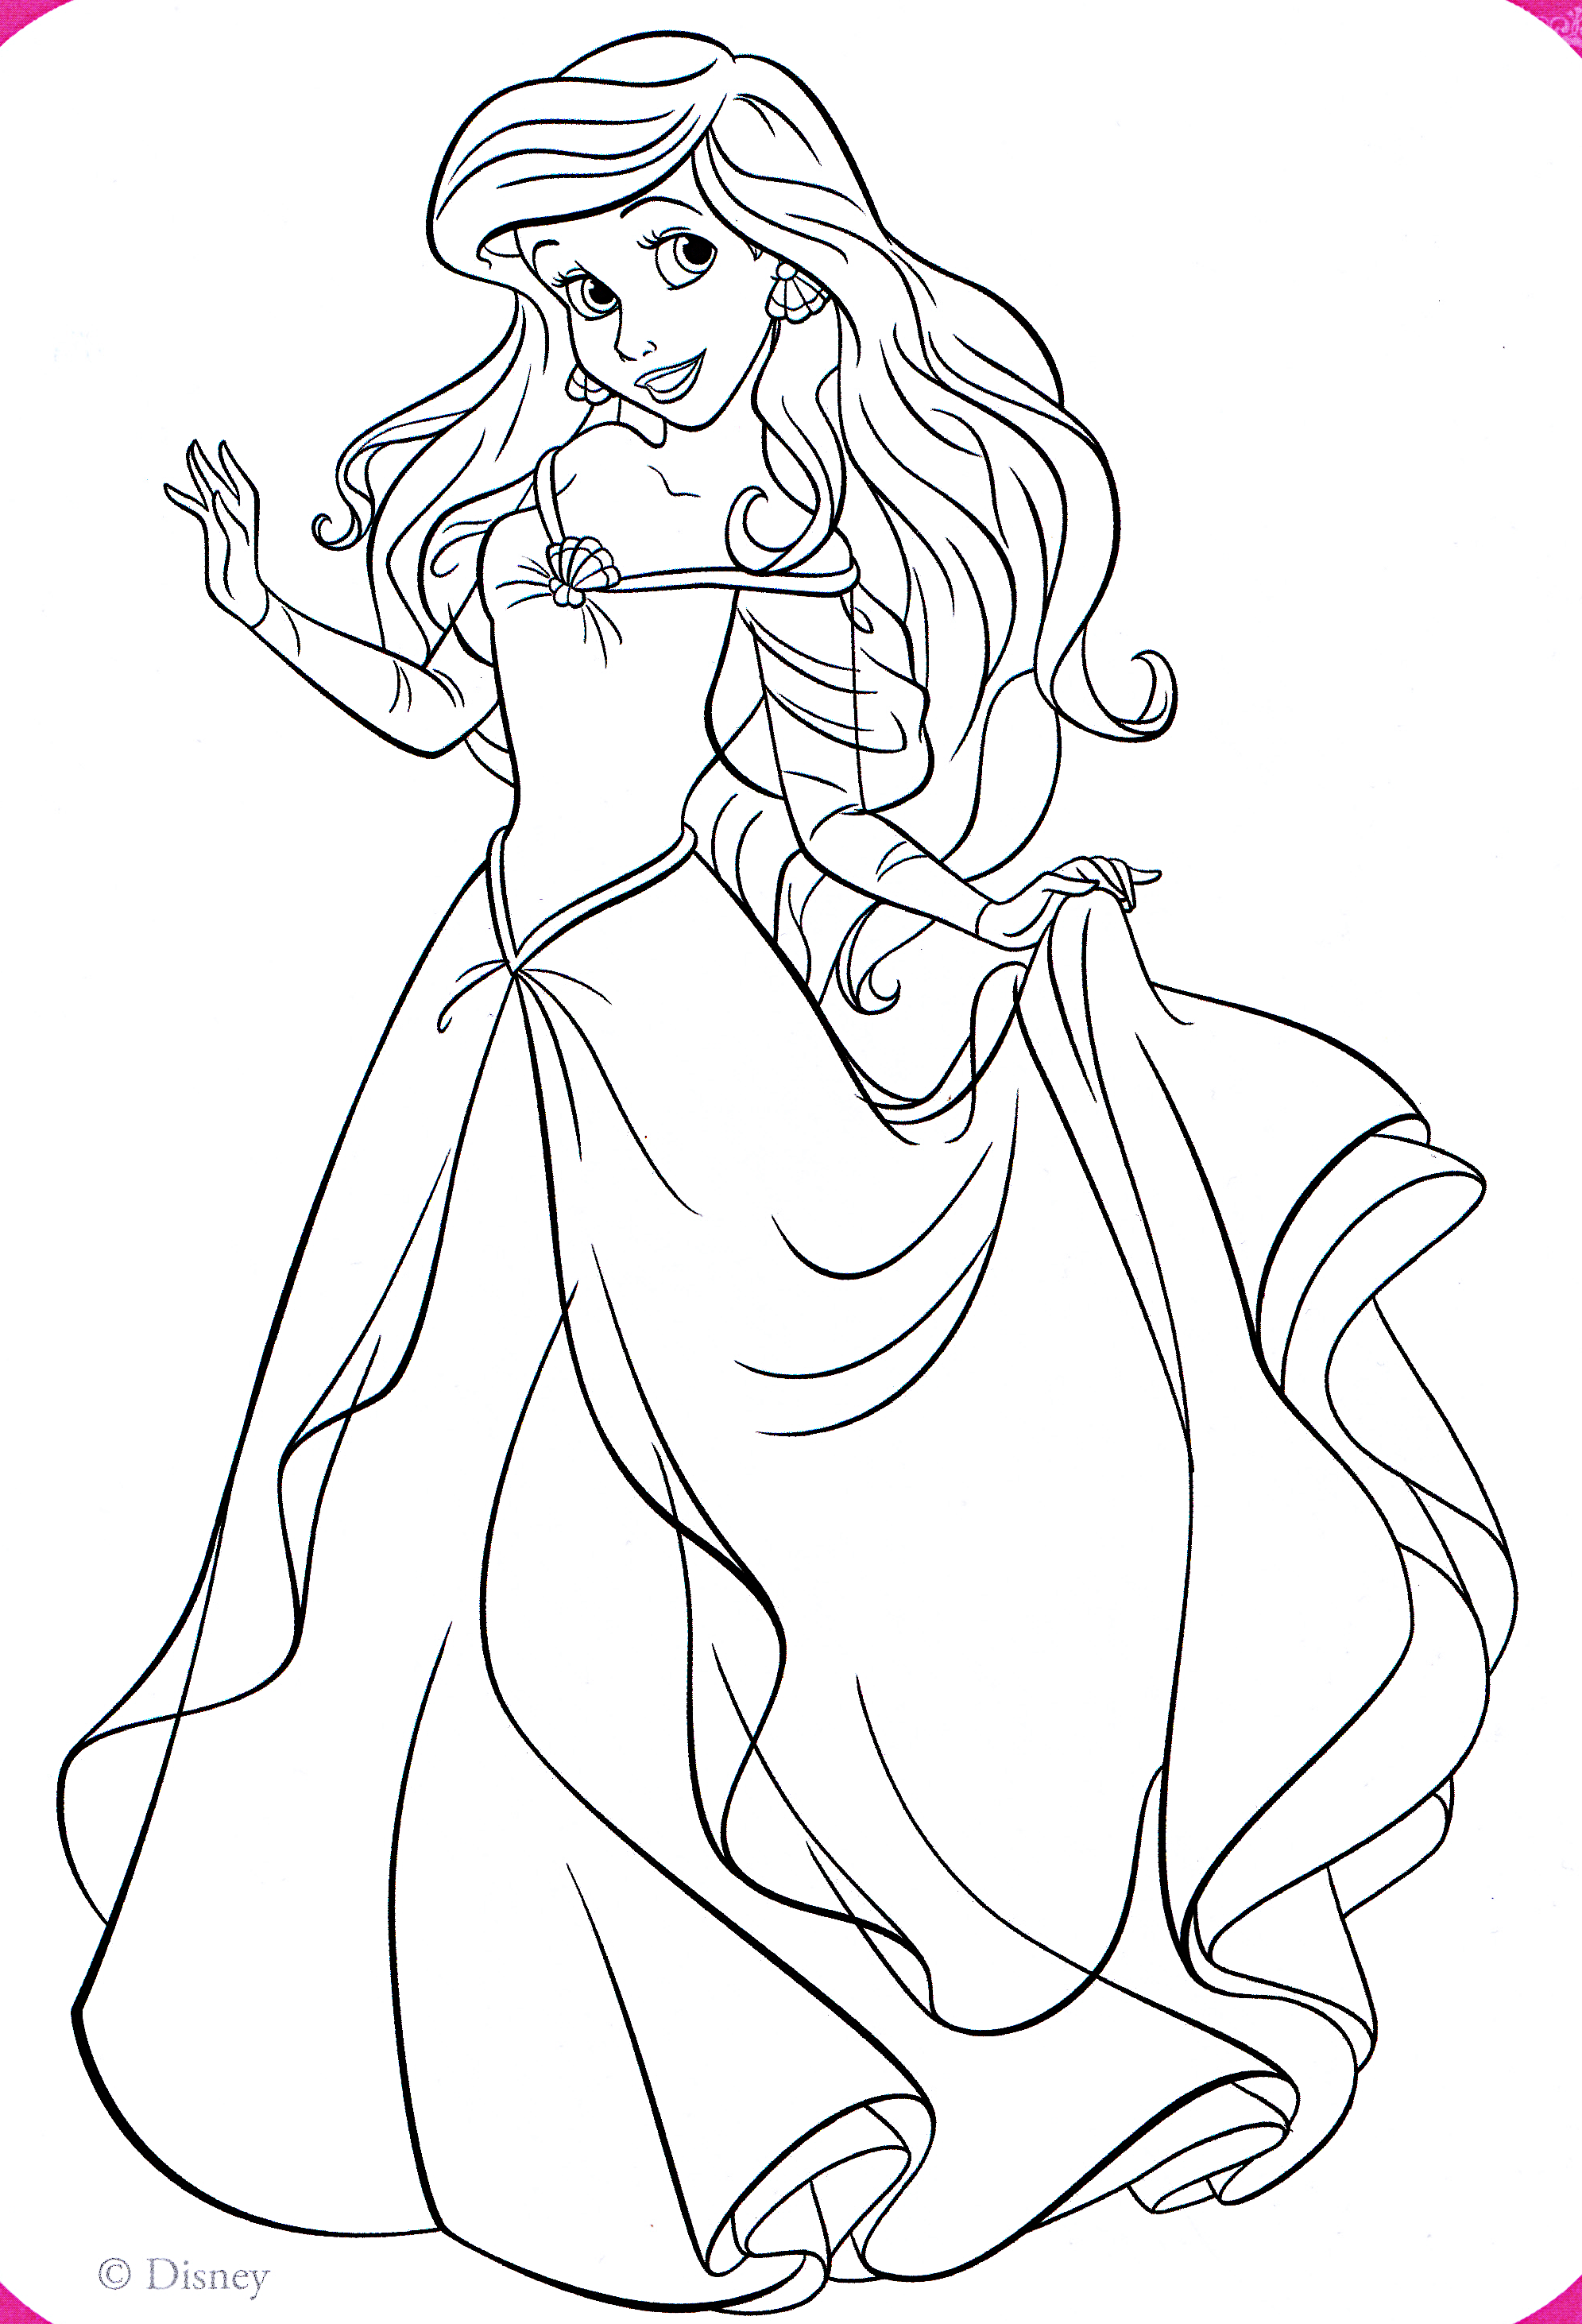 disney ariel coloring pages - photo#24